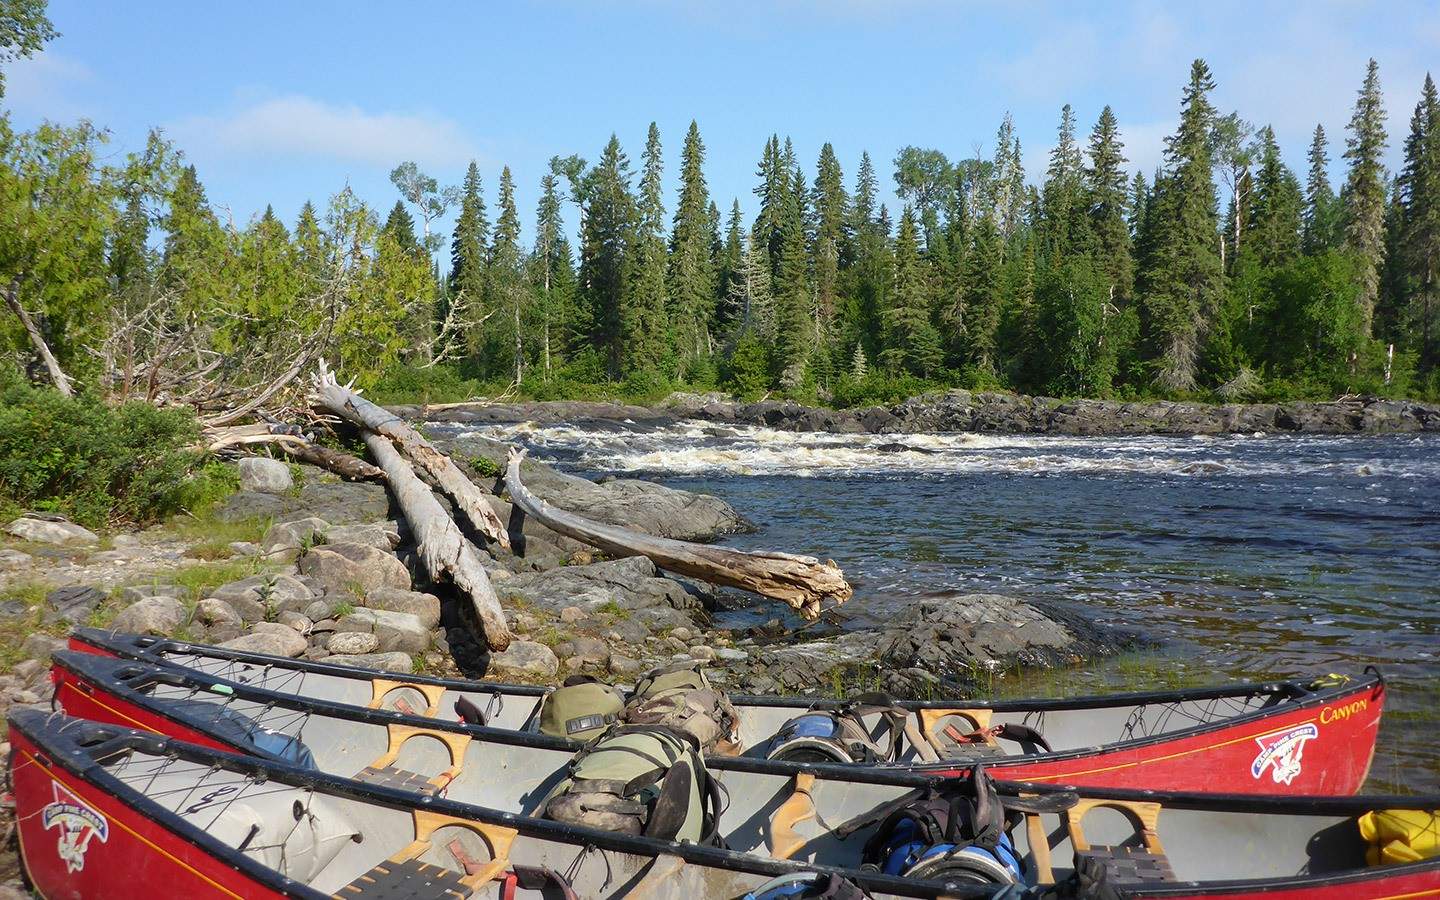 Canoes at Missinaibi Provincial Park